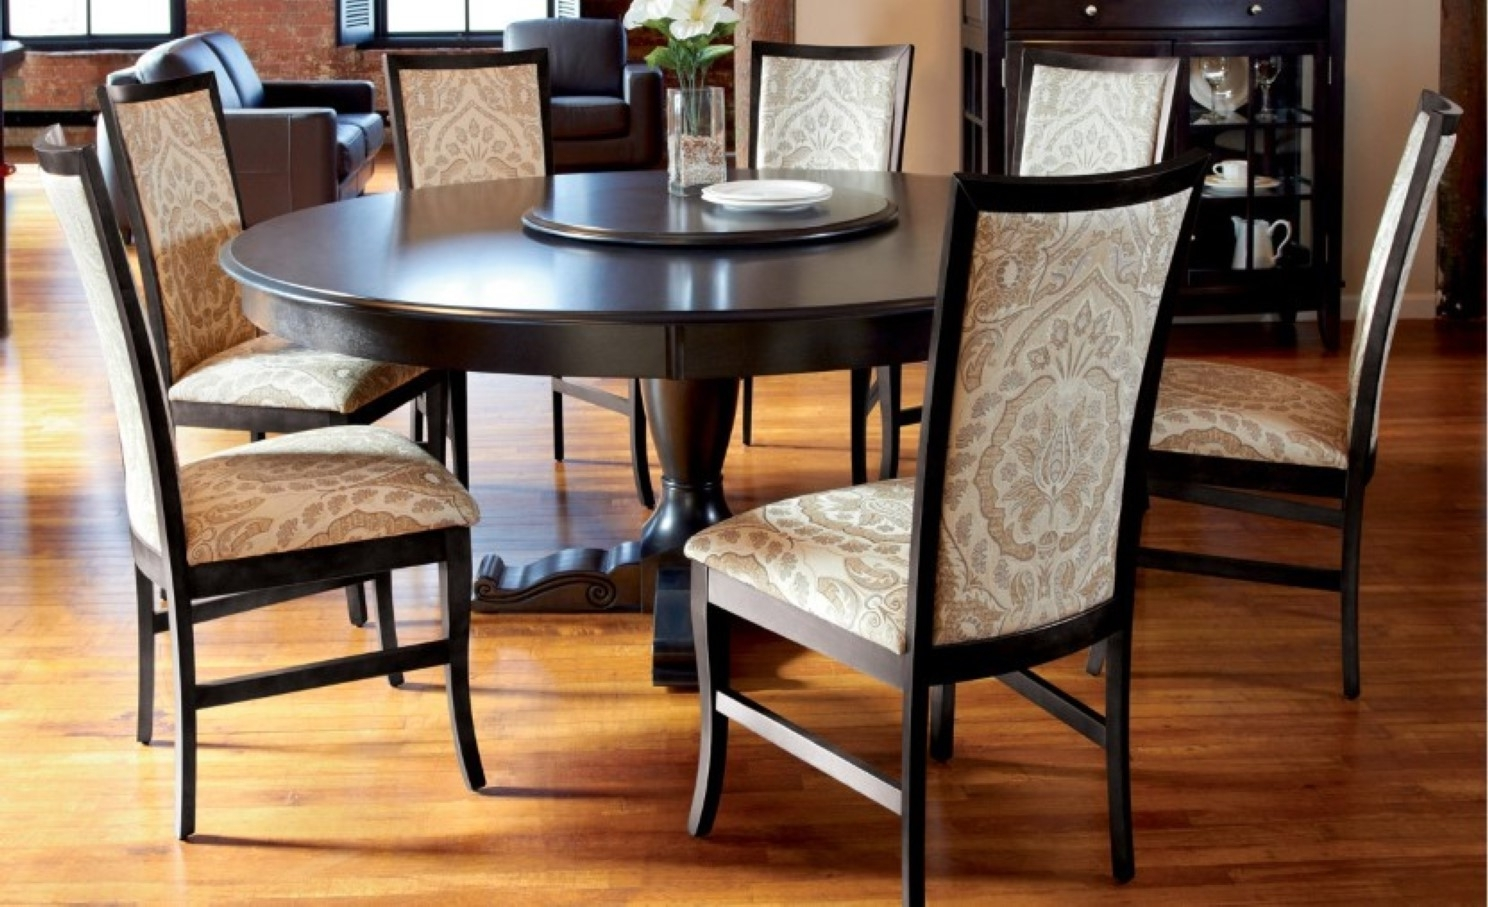 Circle Marvellous Sets Room For Set Chairs Large Tables Oak Table With Regard To 2017 Circle Dining Tables (View 7 of 25)